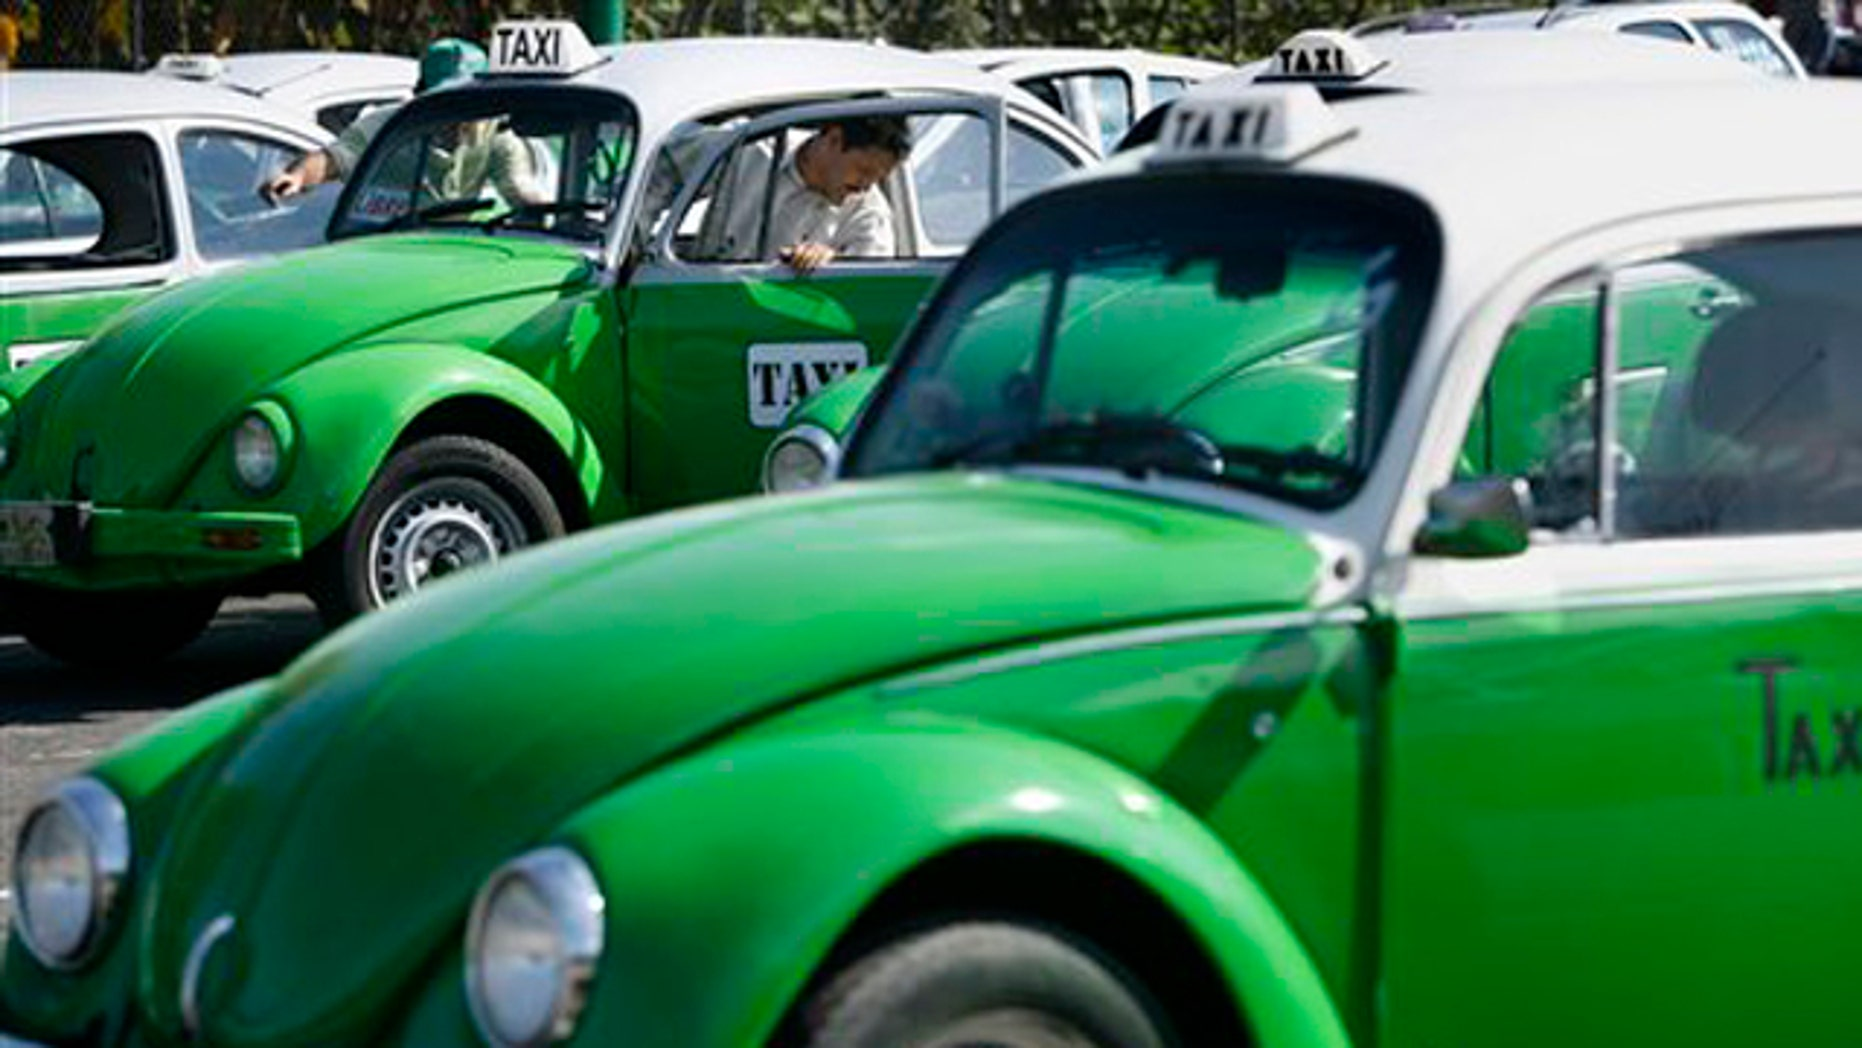 Dec. 28, 2007: In this photo, a man steps out of his Volkswagen beetle taxi during an inspection in Mexico City.  Mexico City has announced that the last of the iconic Volkswagen Beetle taxis will be withdrawn from service by the end of 2012.